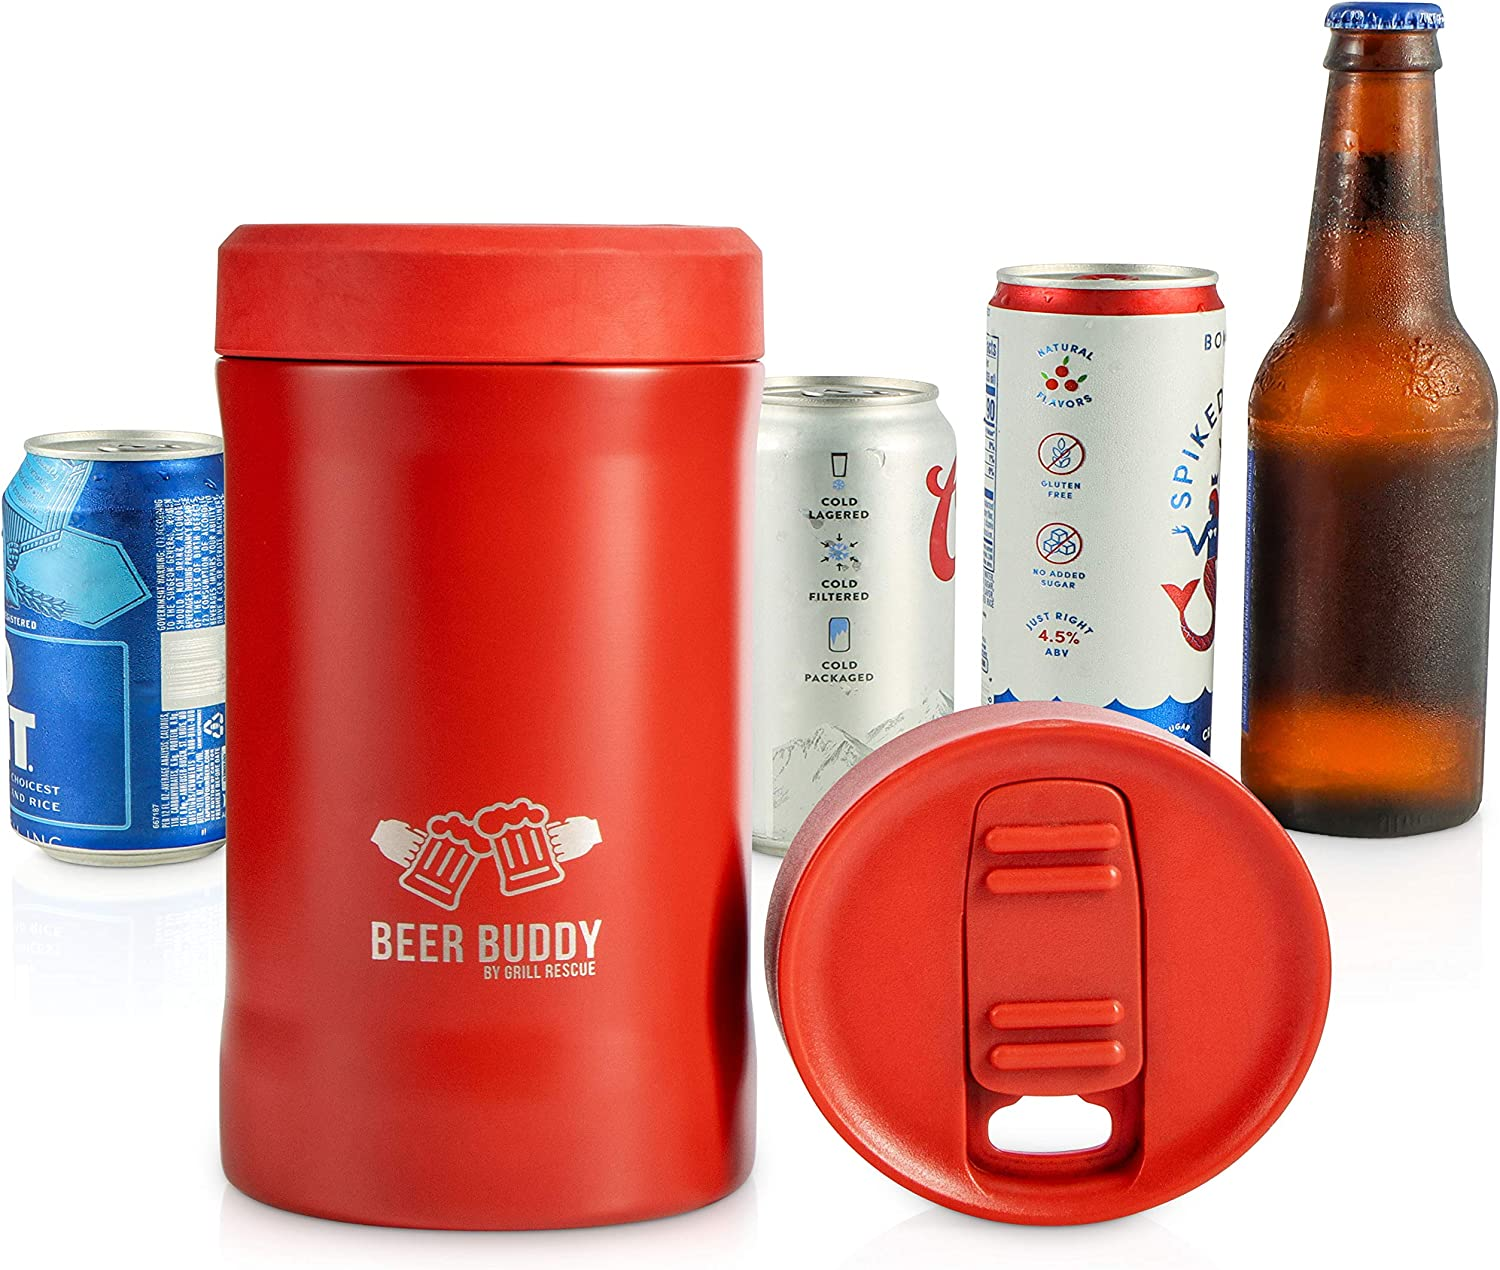 Beer Buddy Insulated Can Holder – Vacuum-Sealed Stainless Steel – Beer Bottle Insulator for Cold Beverages – Thermos Beer Cooler Suited for Any Size Drink - One Size Fits All